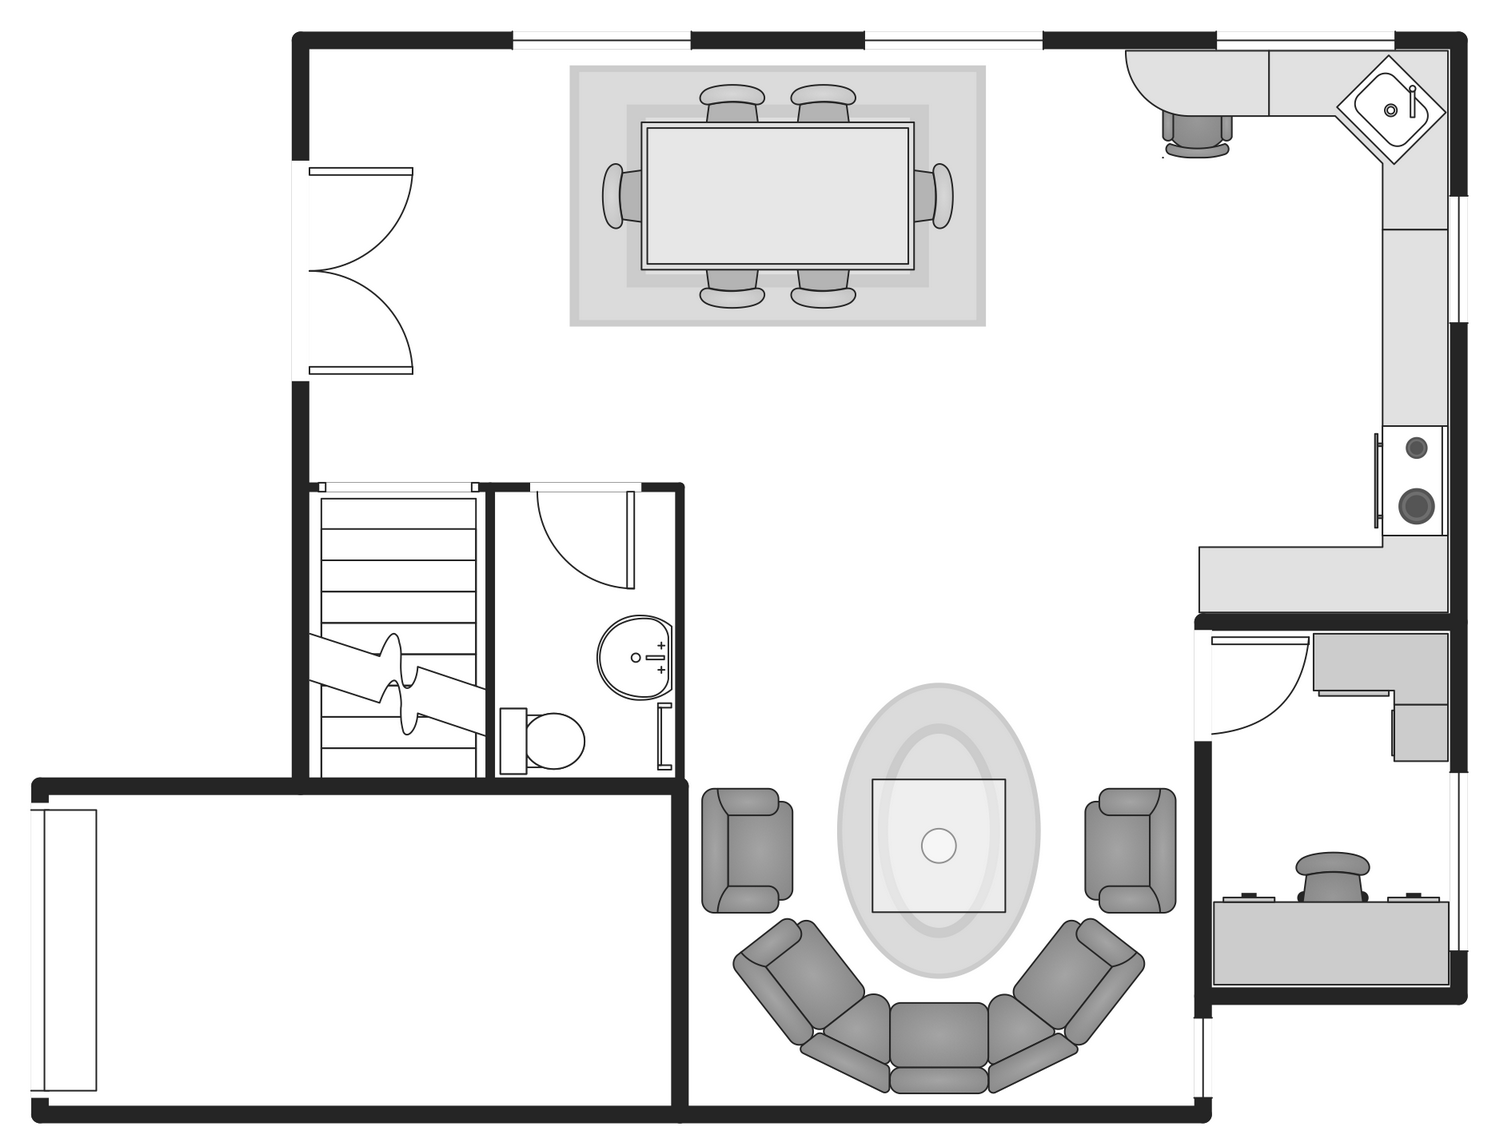 New basic floor plans solution for complete building design for Floorplan com